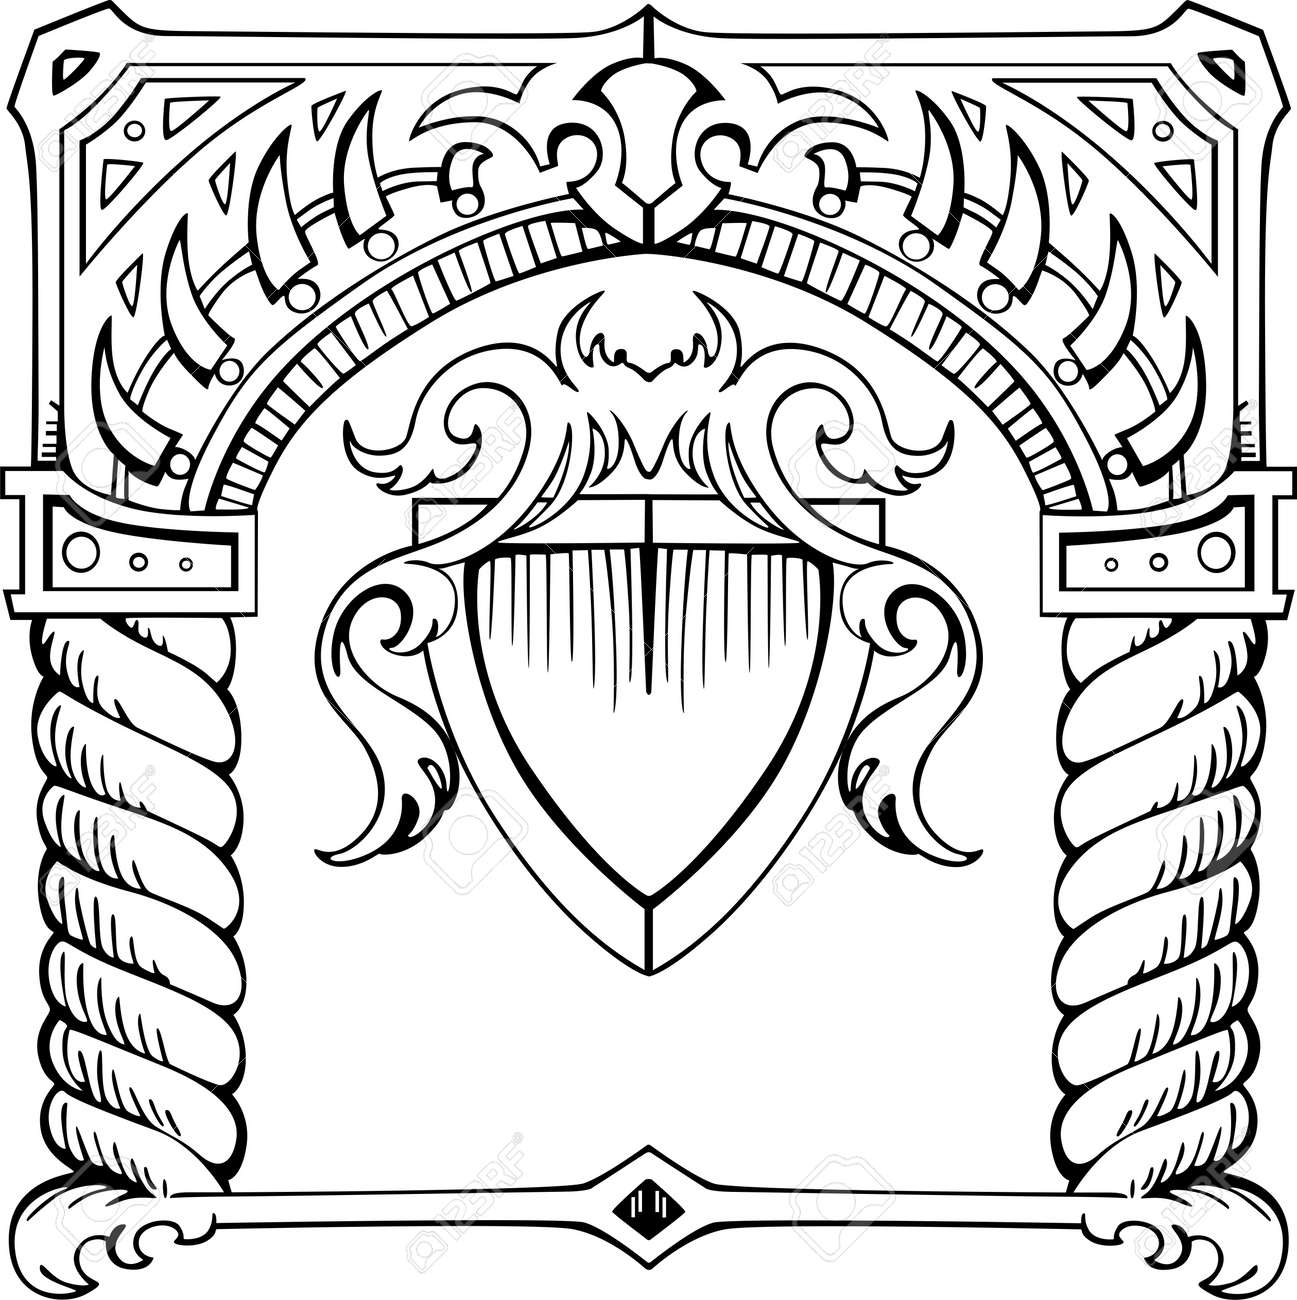 Frame in form of arch with shield. Black and white illustration. Stock Vector - 13607441